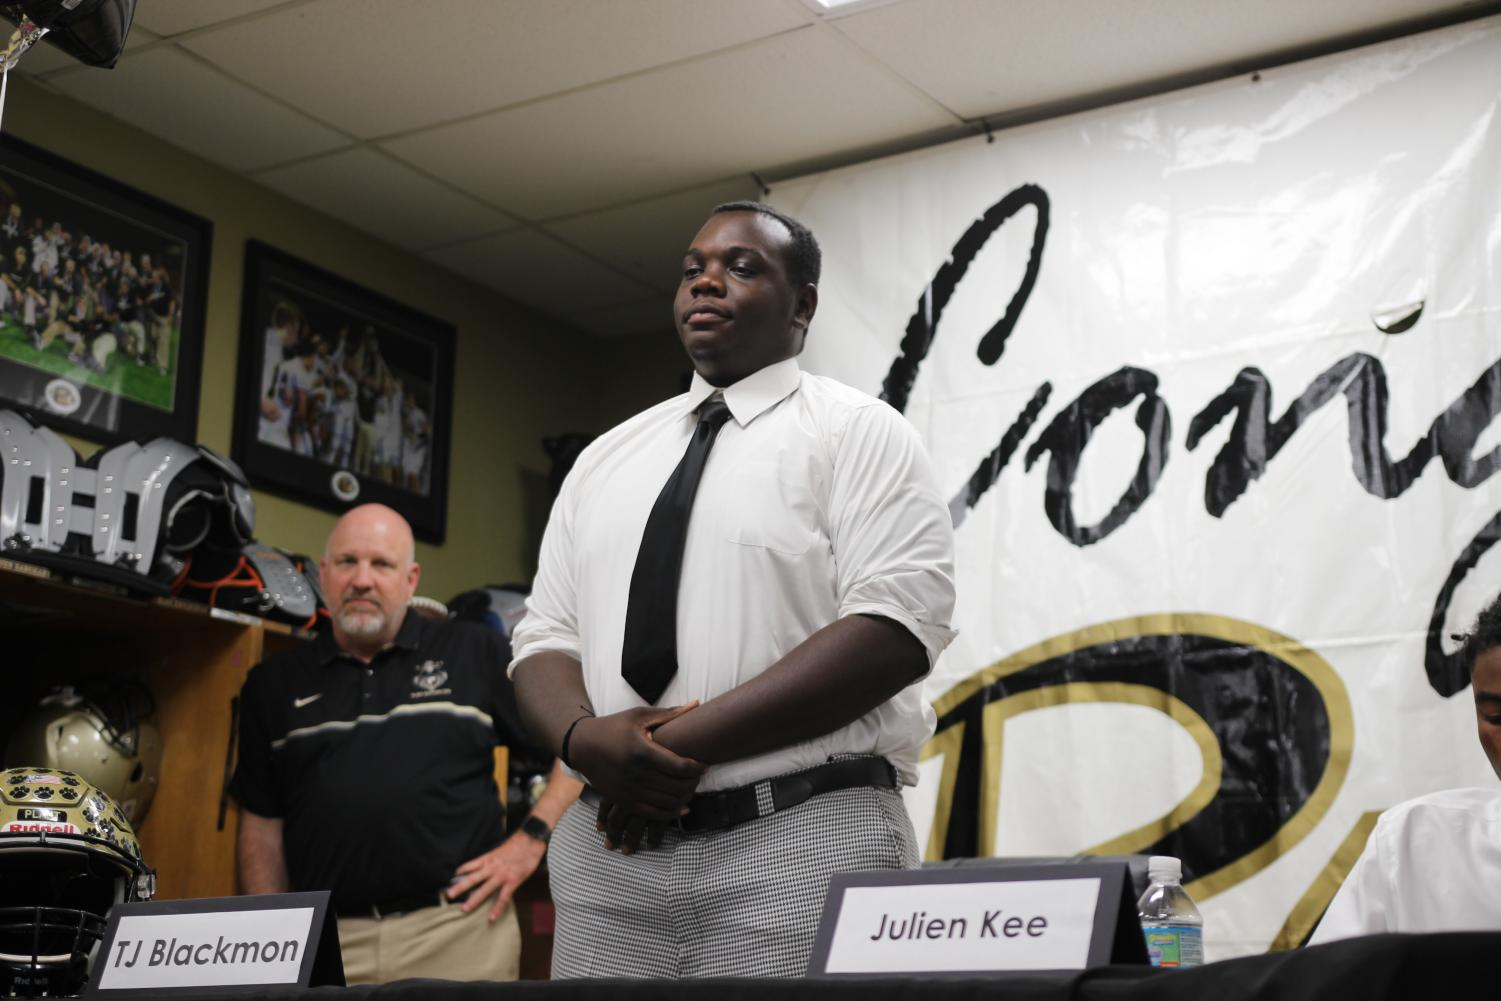 Standing+in+front+of+family+and+friends%2C+senior+lineman+TJ+Blackmon+announces+his+college+decision+April+17+in+the+field+house.+Blackmon+will+be+attending+Webber+International+University+next+fall.+%0A